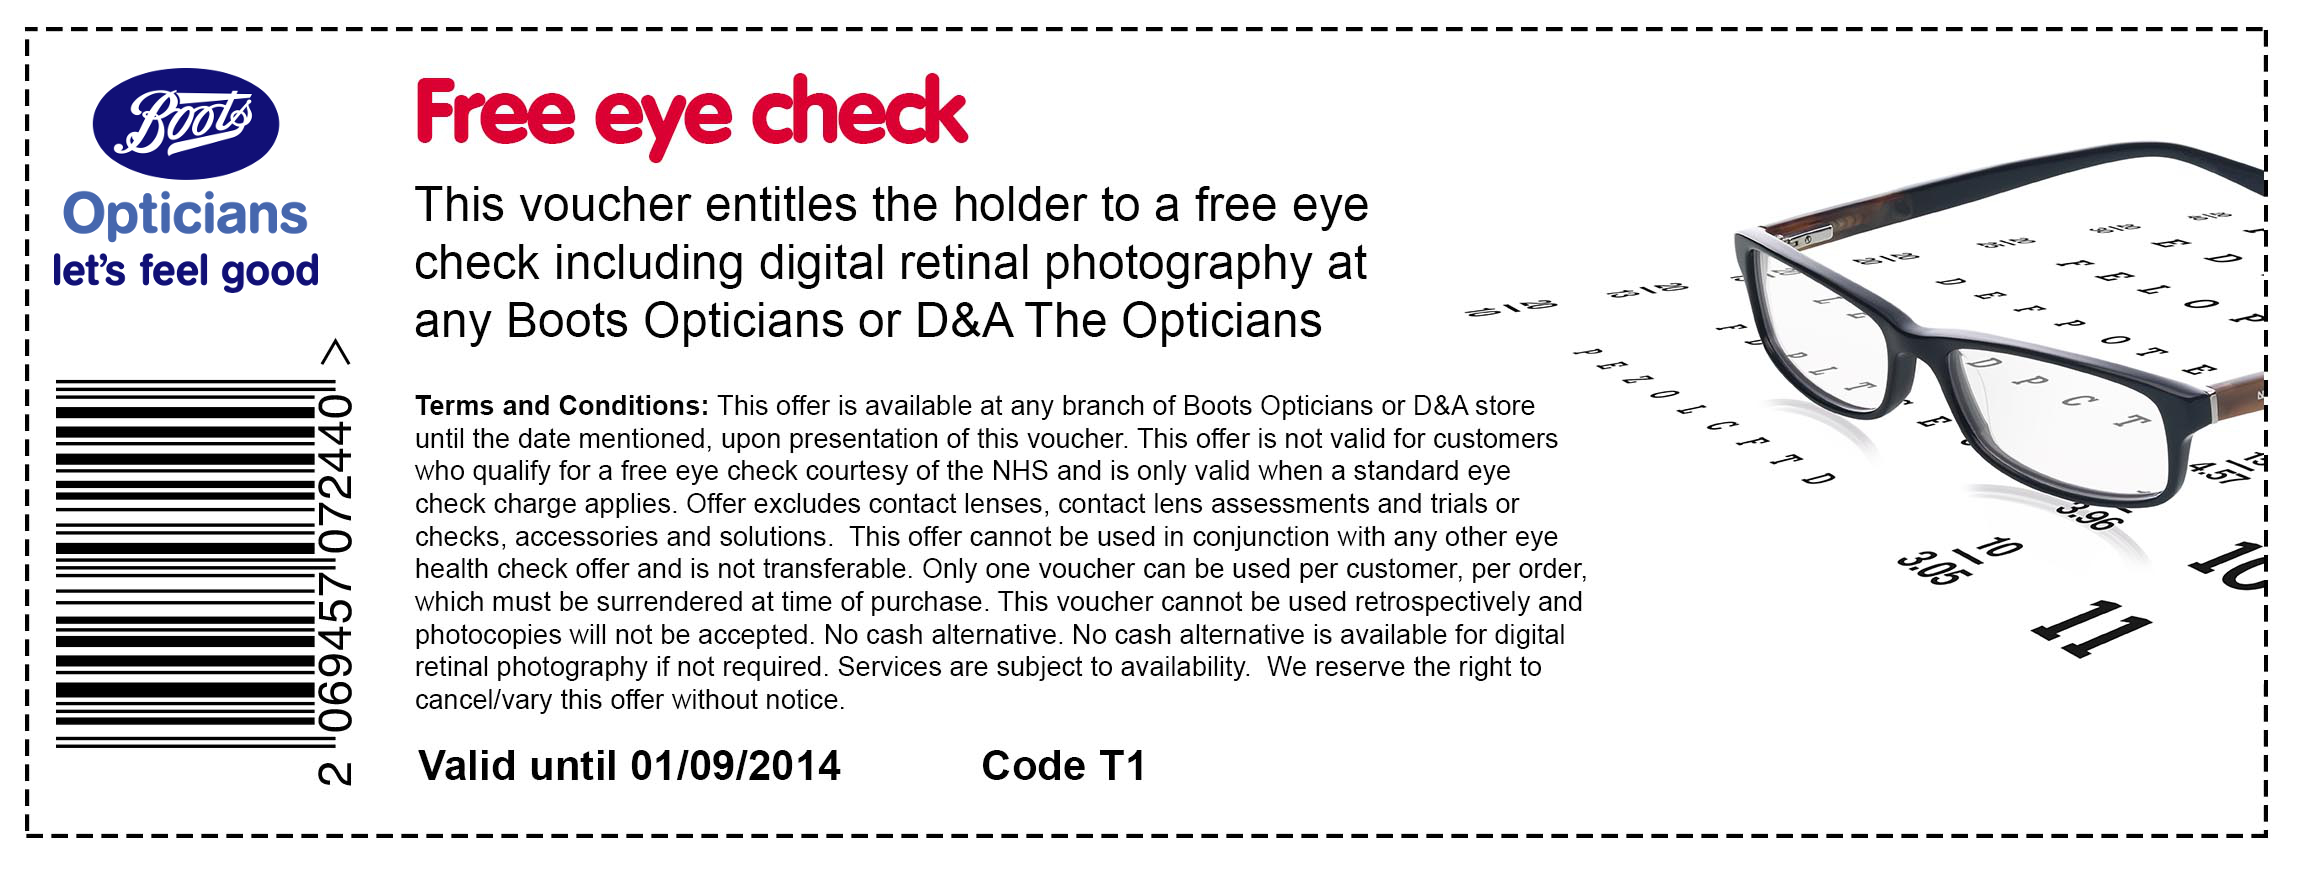 a9eec6dd7c9 ... eye free voucher test codes opticians boots new Boots Boots.260 Boots.  ...